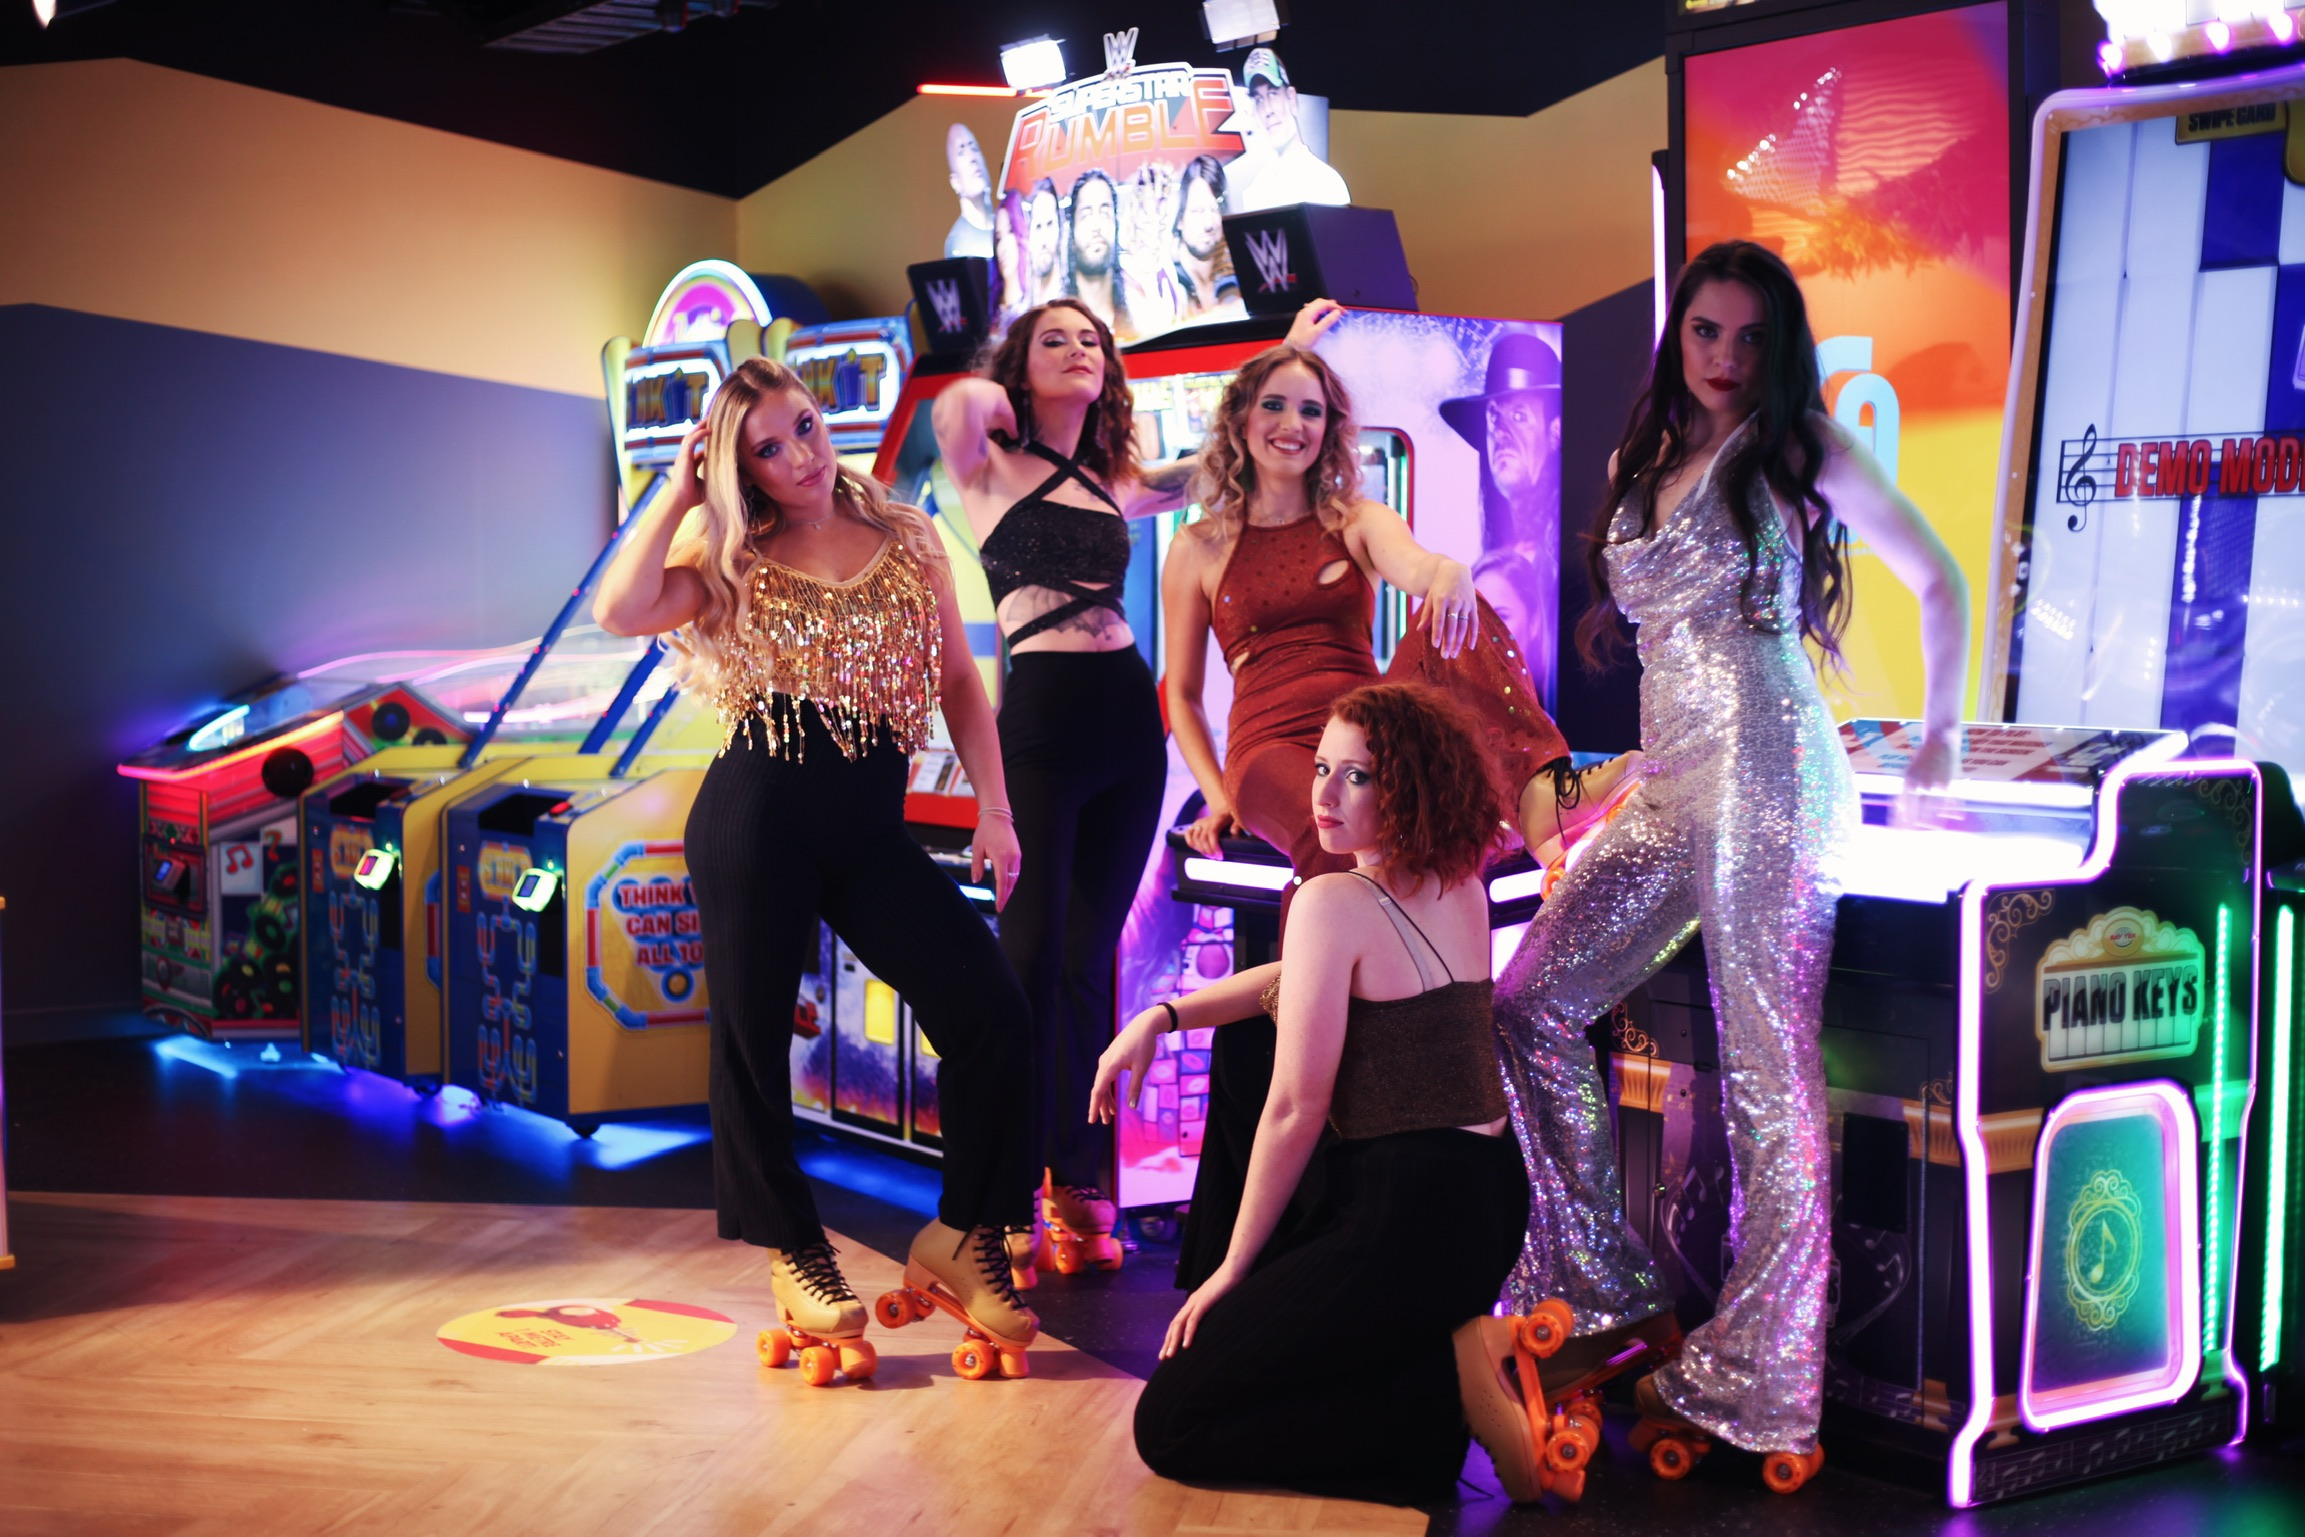 roller girl team model in their studio 54 disco outfits